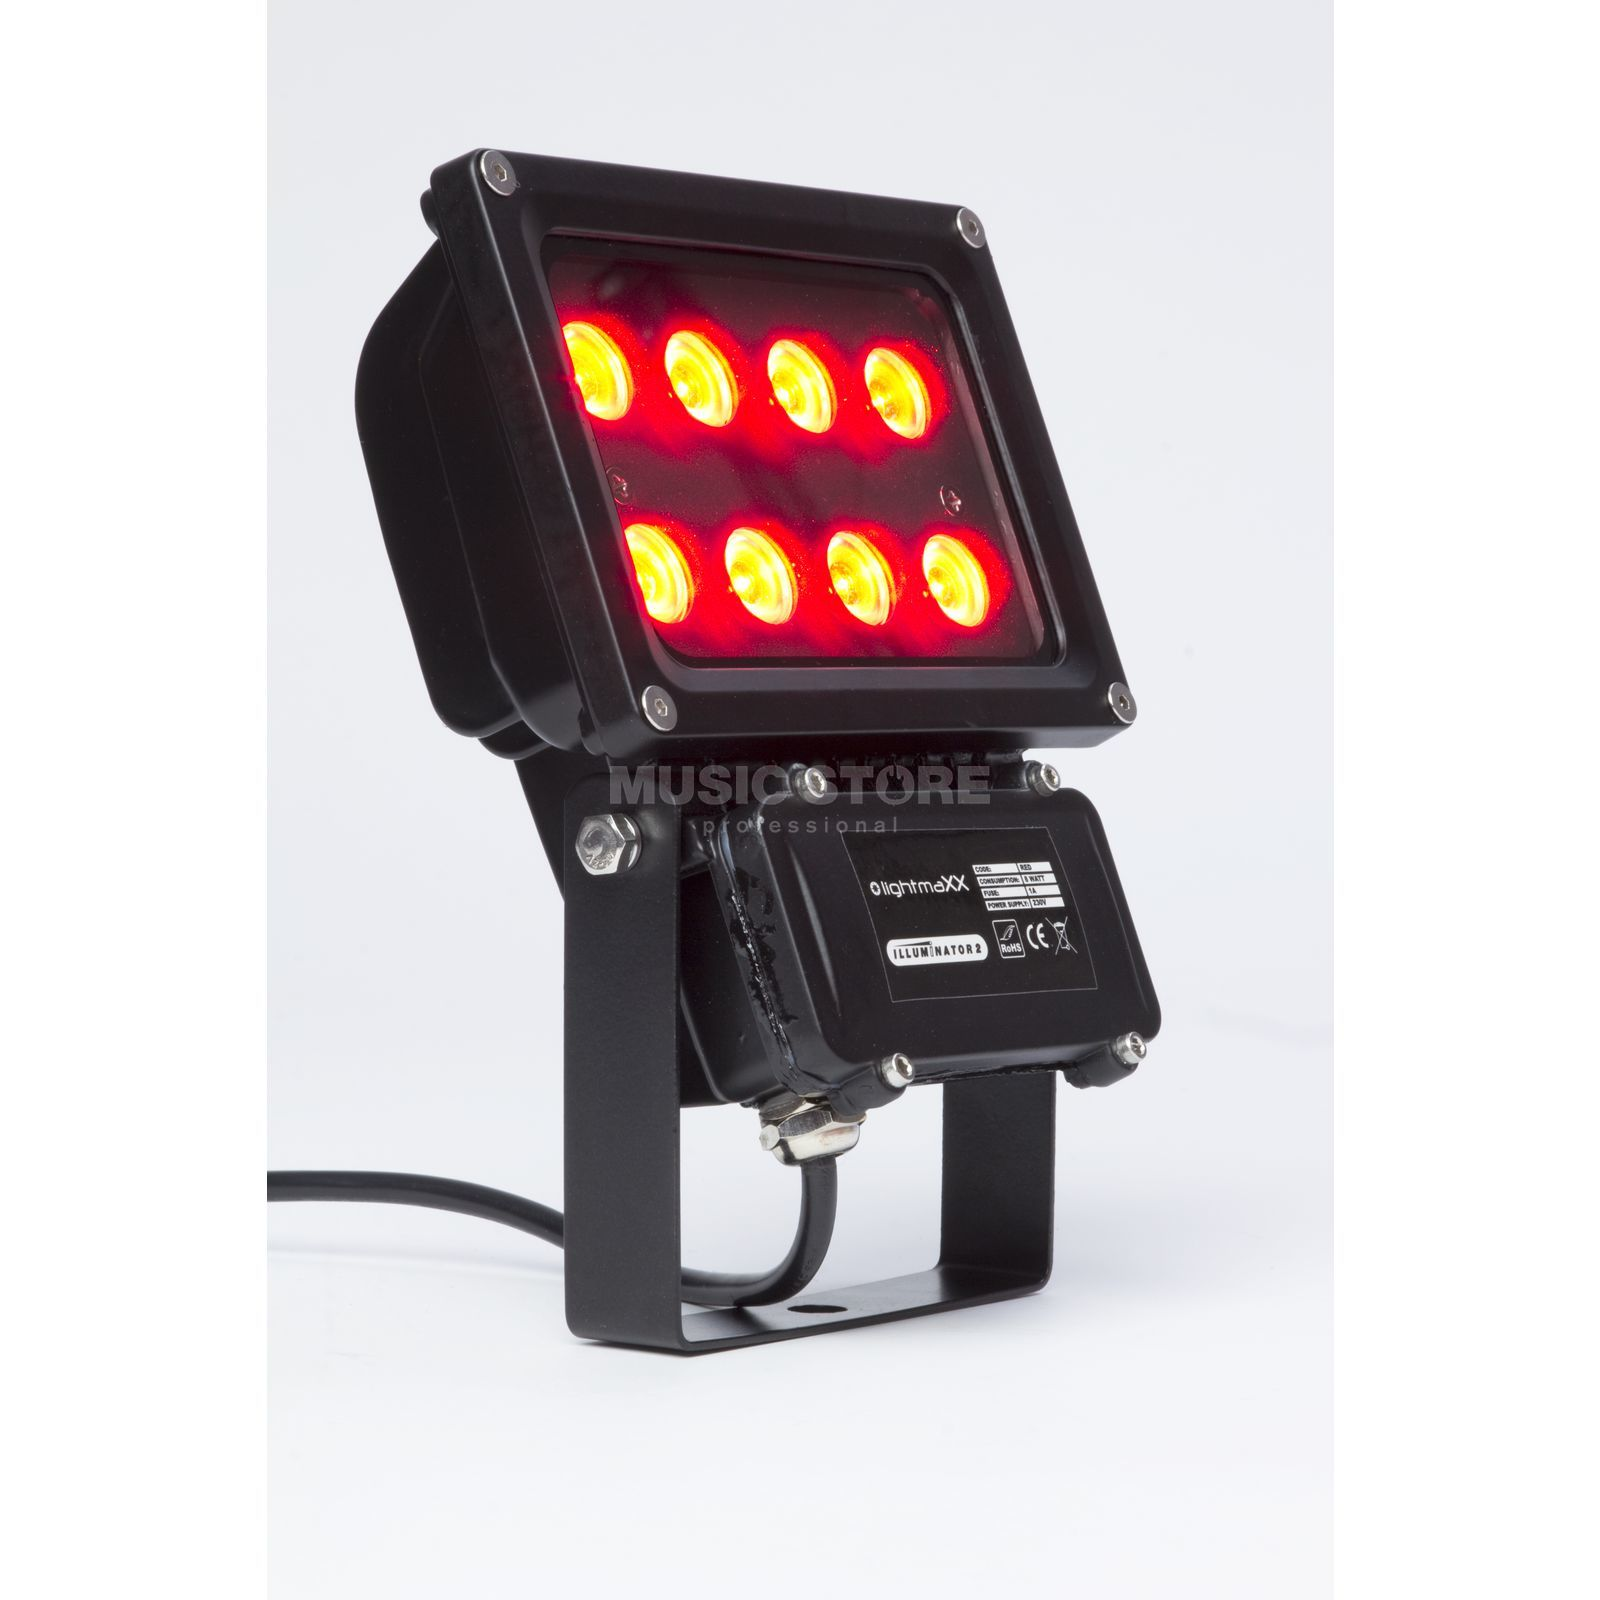 lightmaXX GARDEN LIGHT RED 8x1W Illuminator II IP65 Product Image